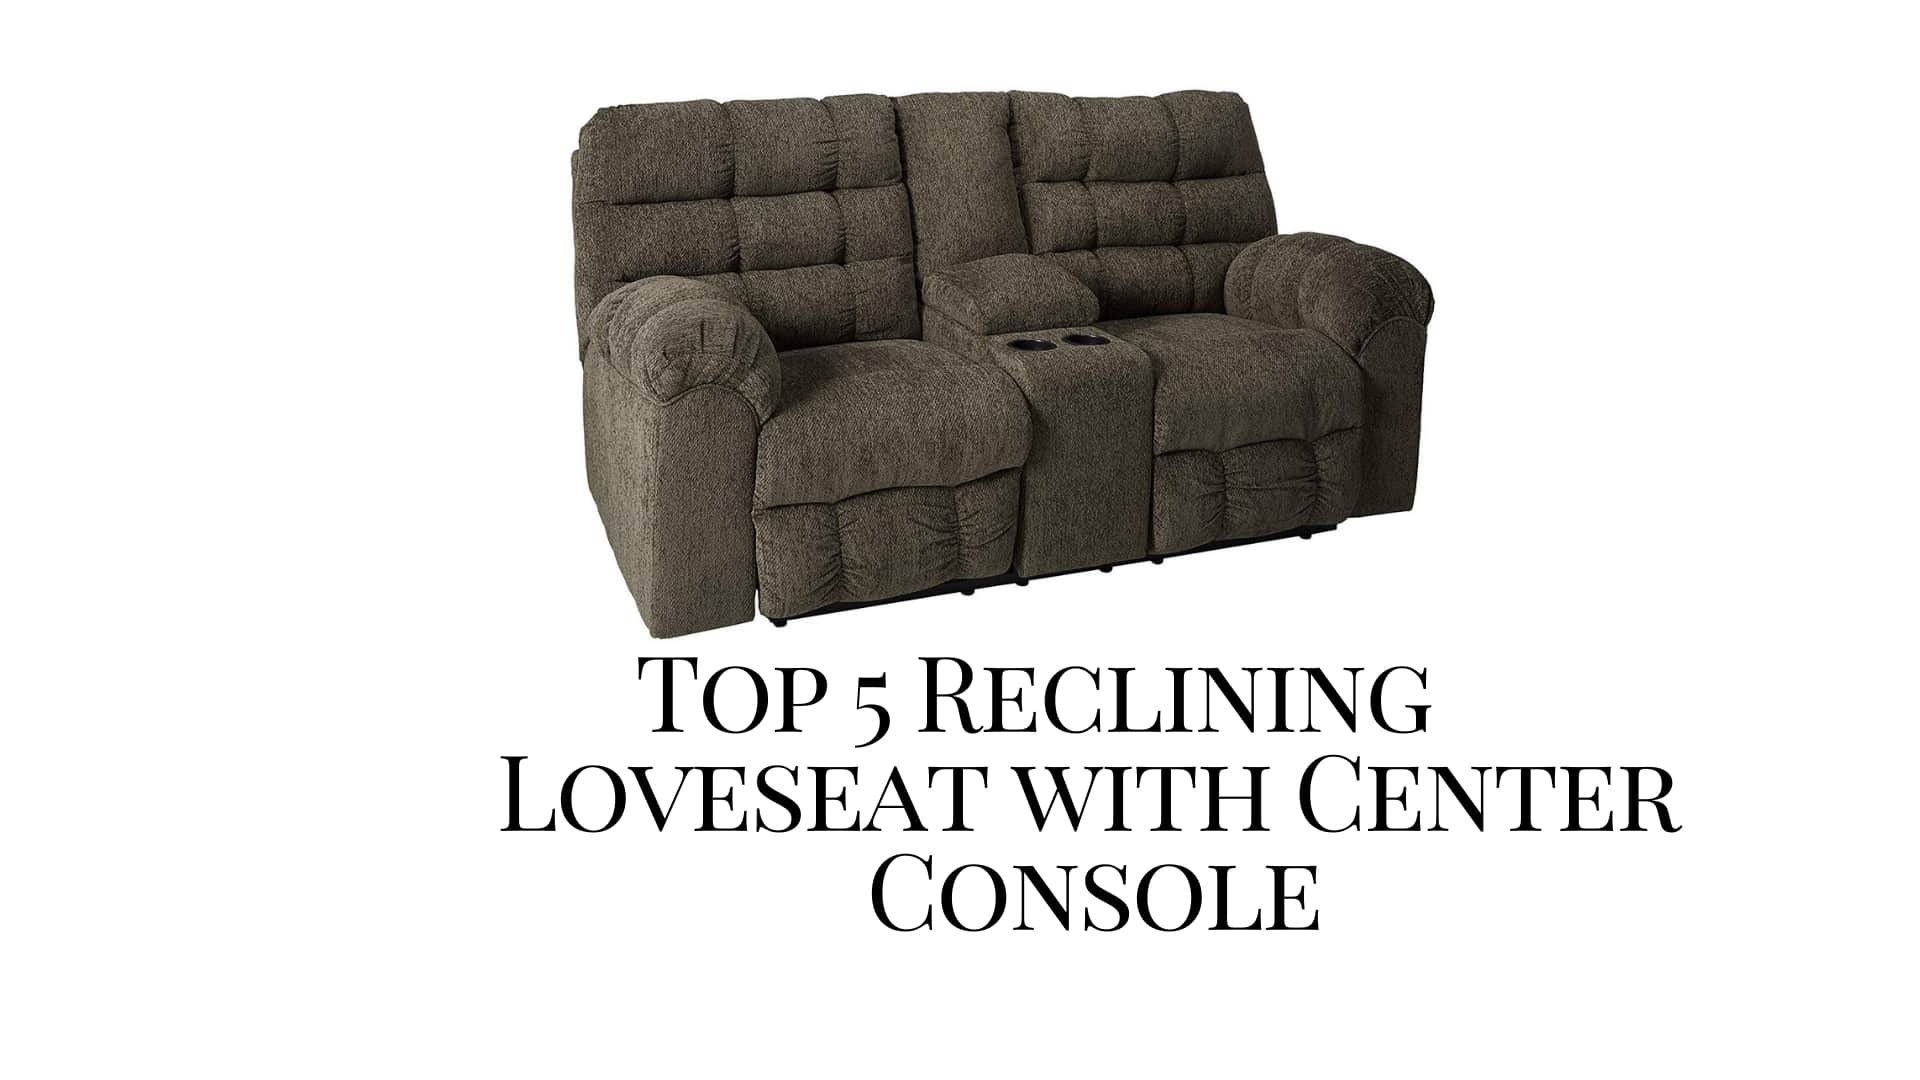 Top 5 Reclining Loveseat with Center Console • Recliners Guide